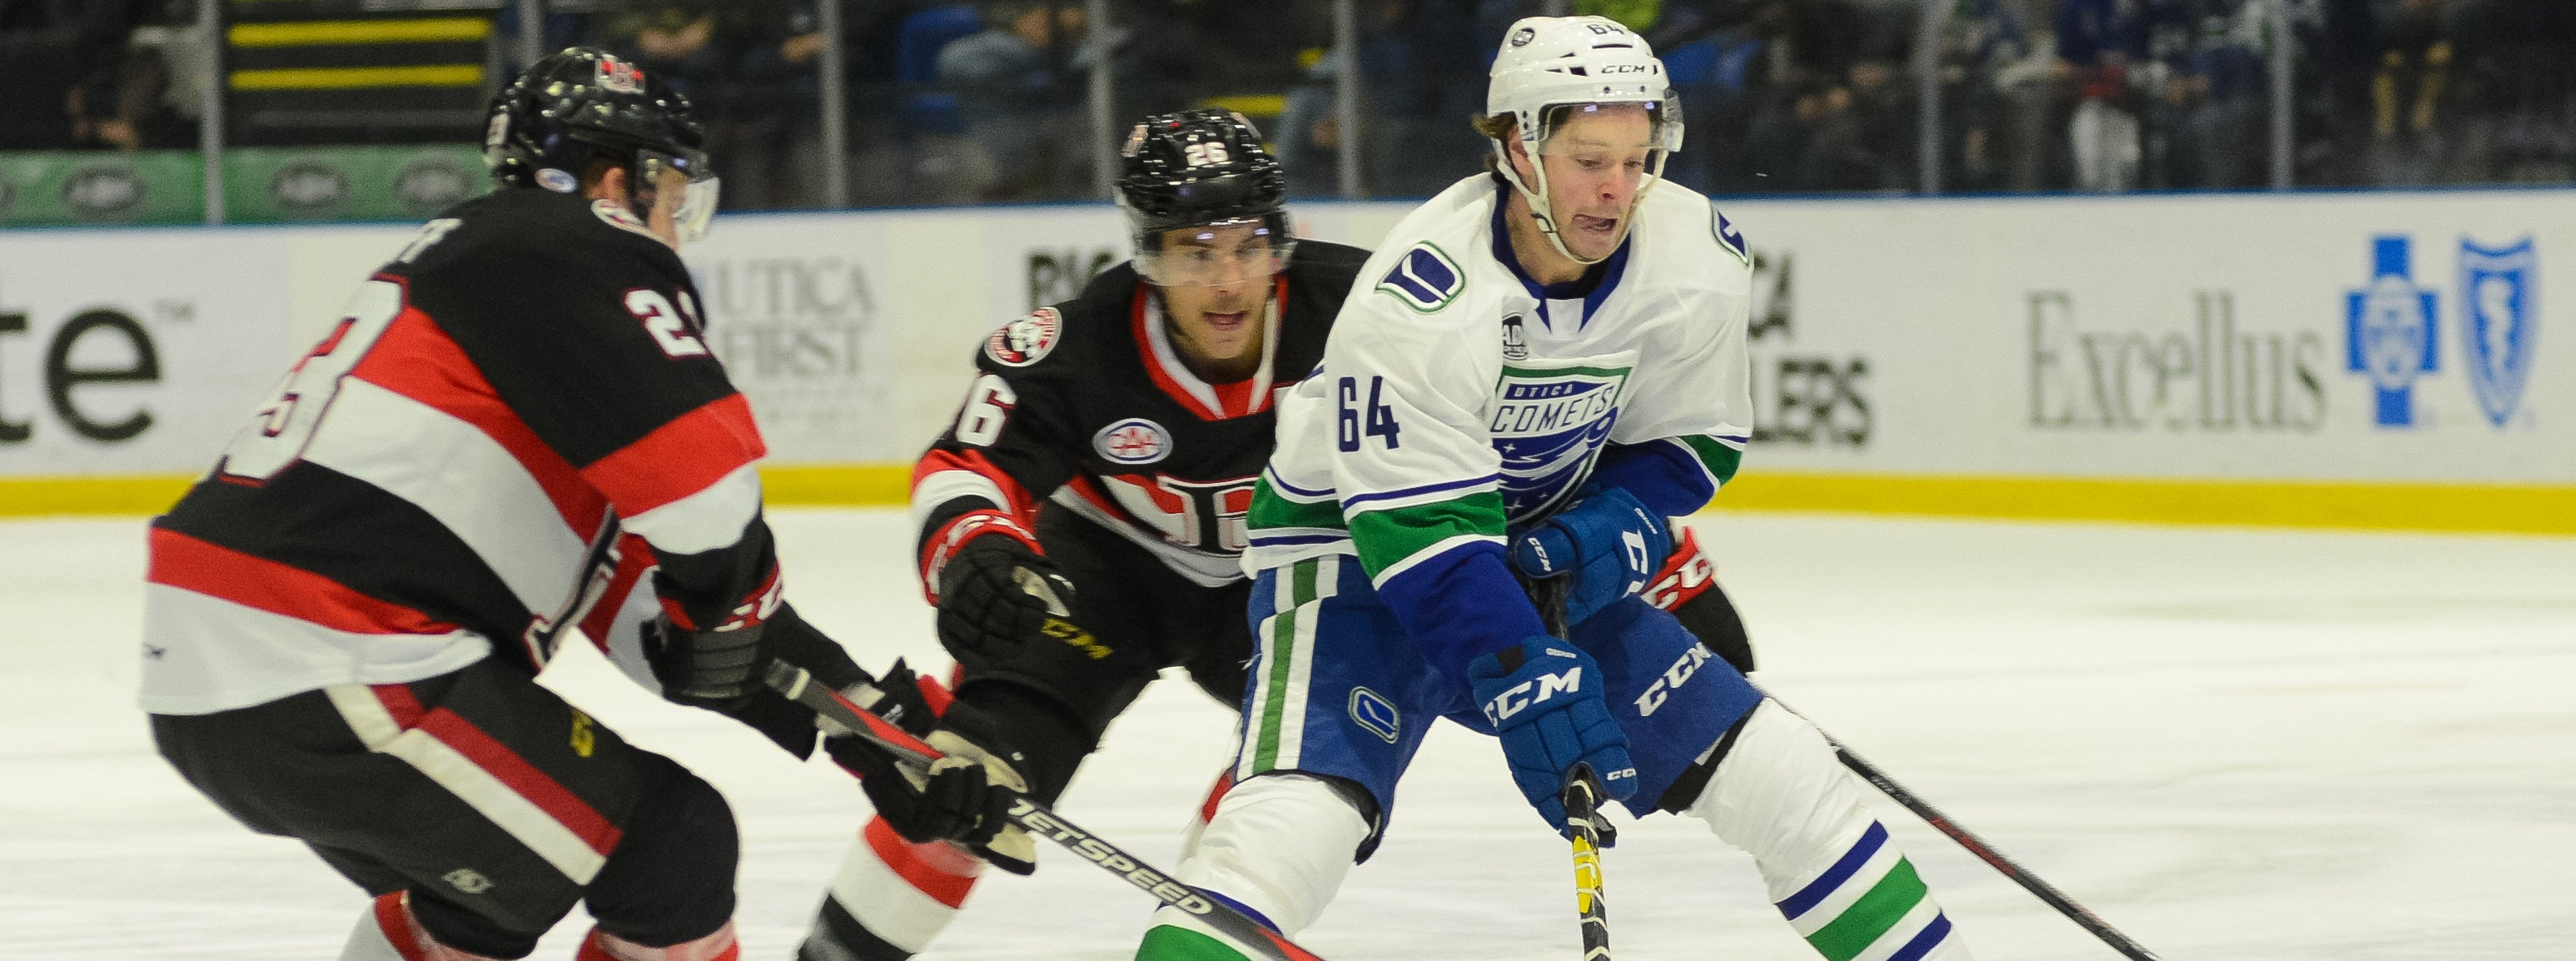 COMETS BATTLE SENATORS IN CRITICAL DIVISIONAL SHOWDOWN